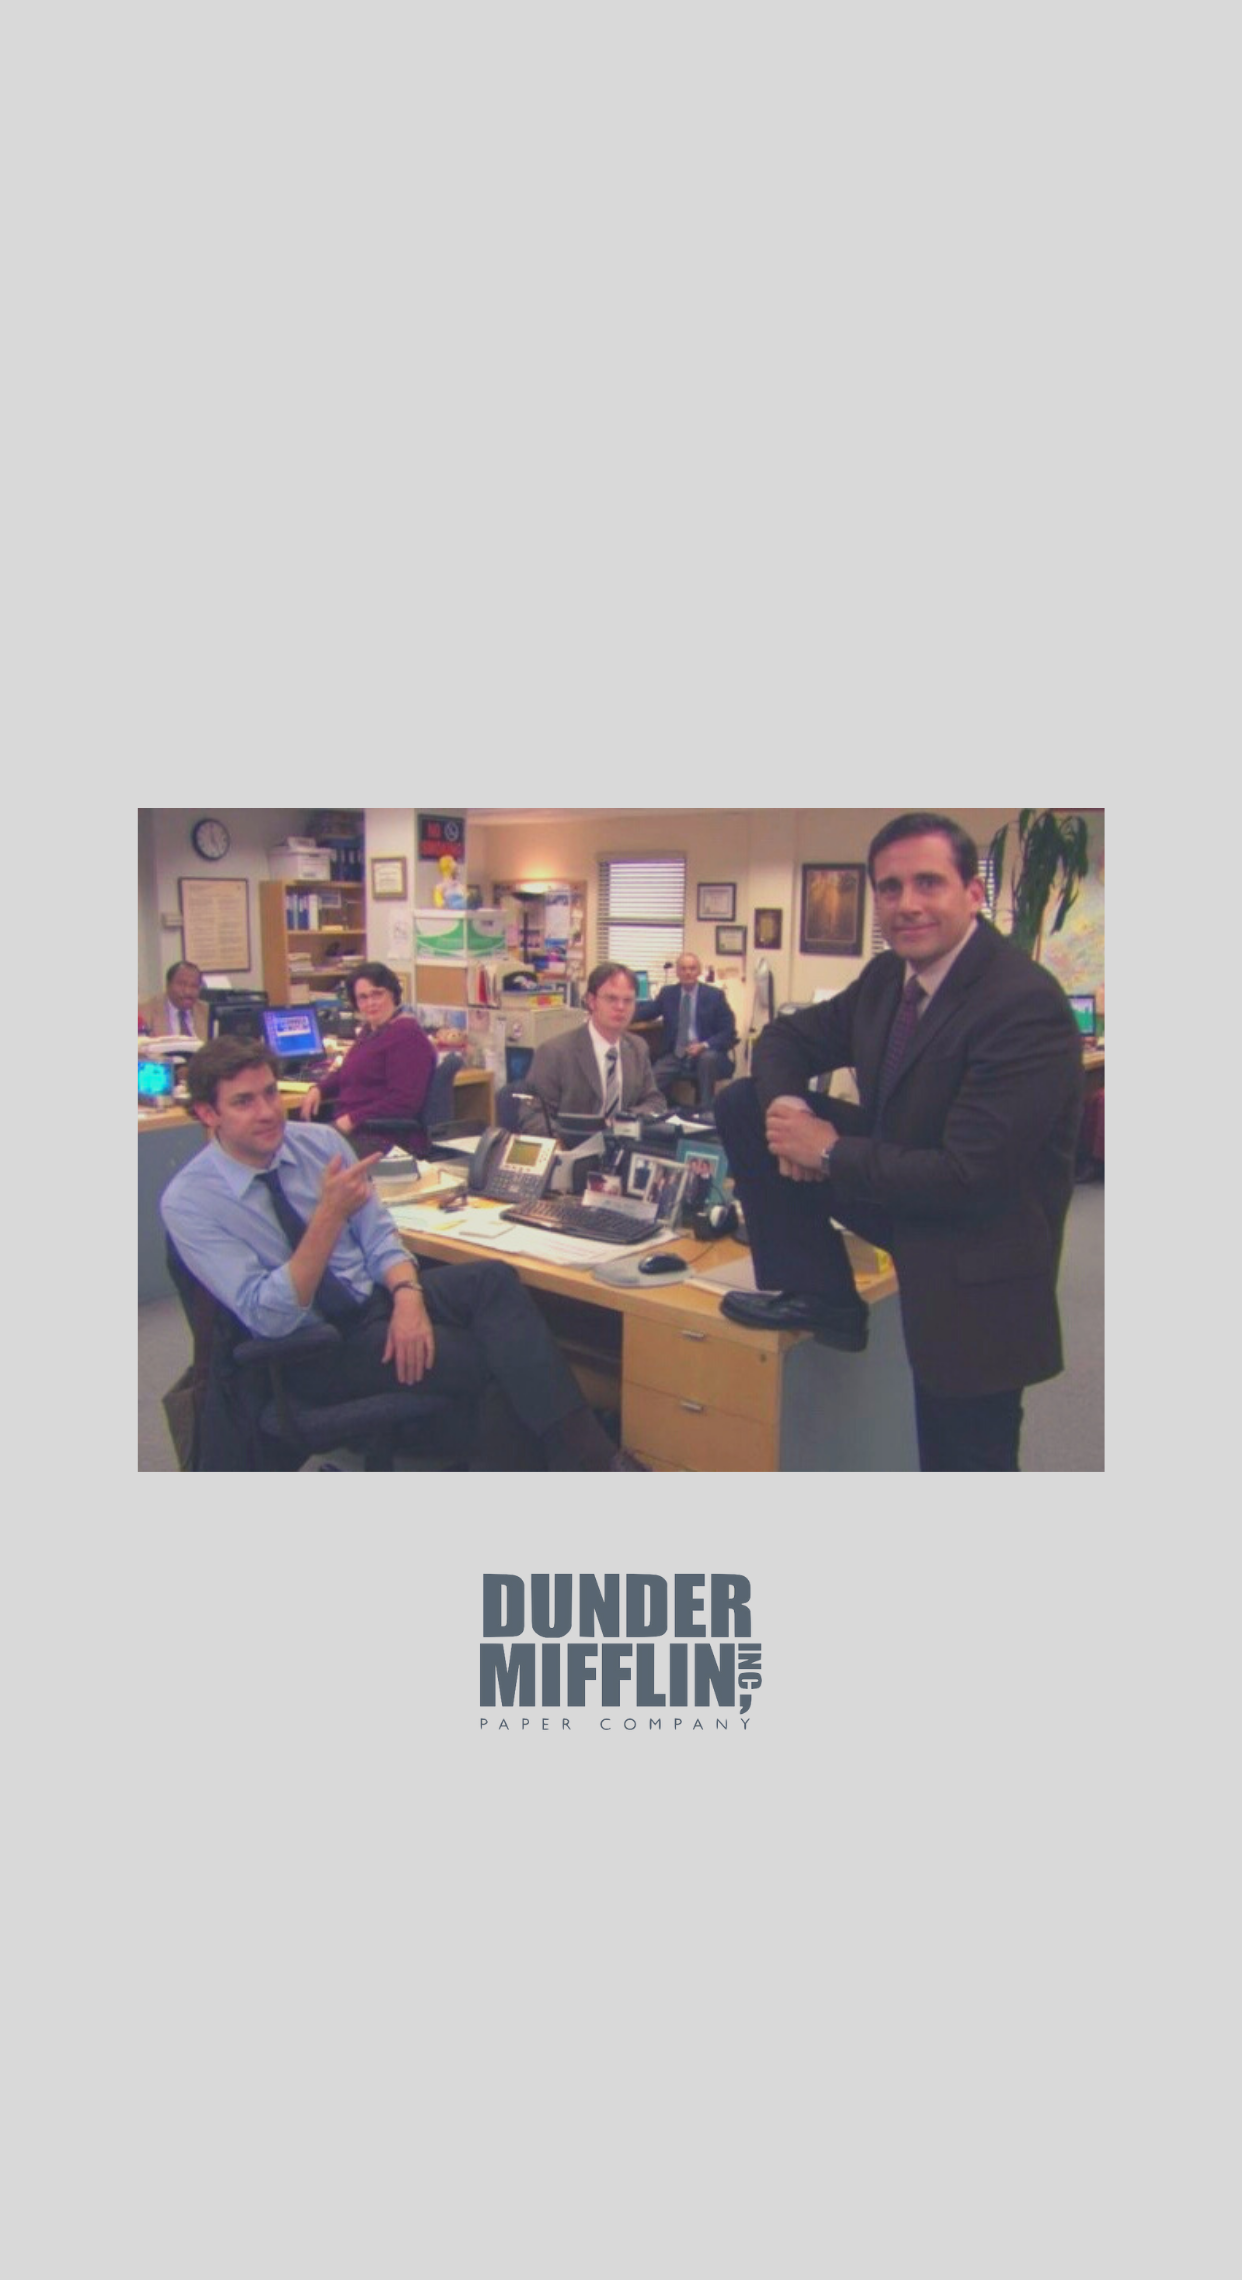 The Office The Office Show Office Wallpaper Office Pictures